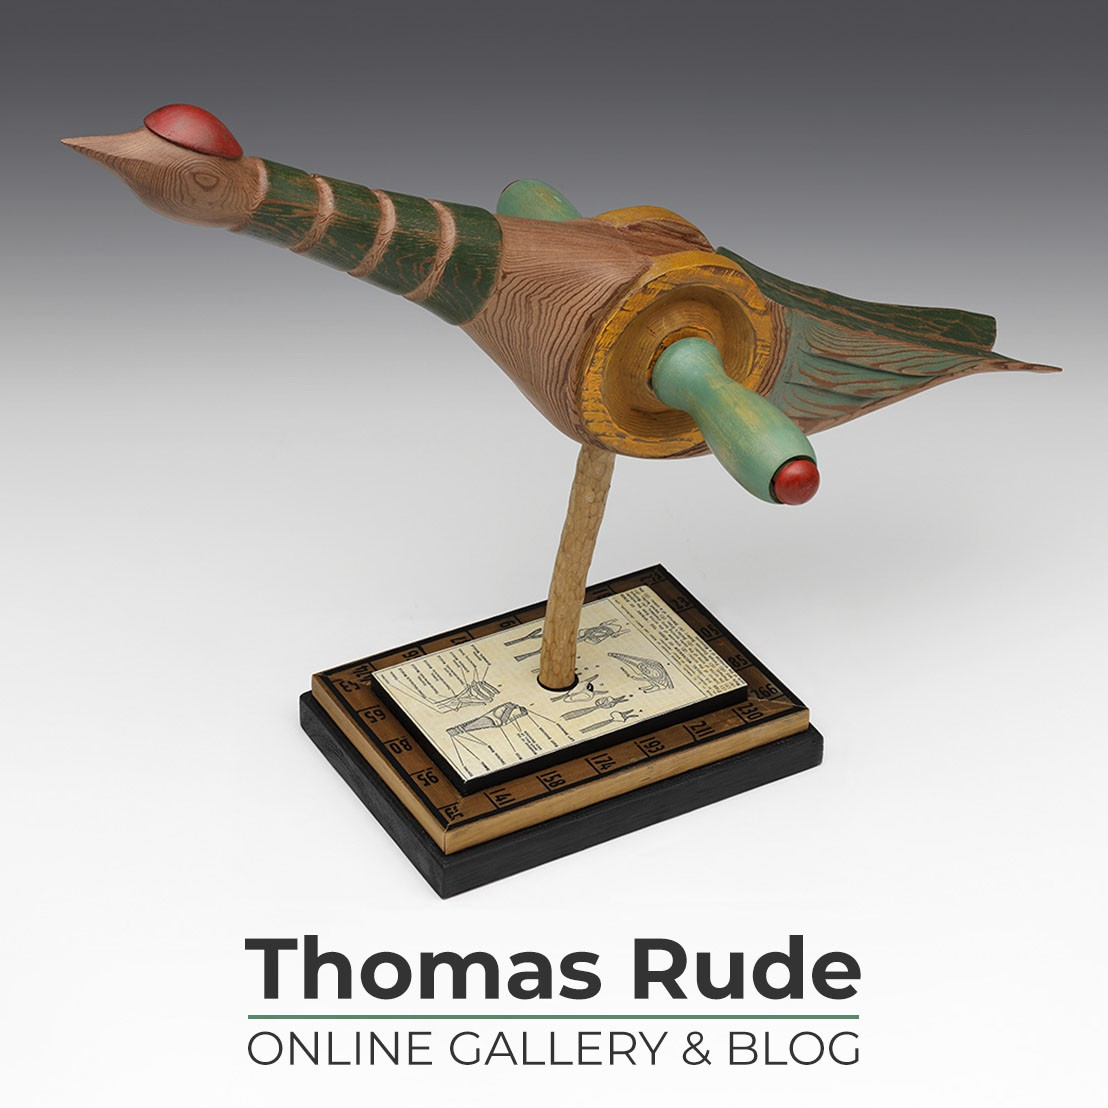 Thomas Rude sculptor portfolio card